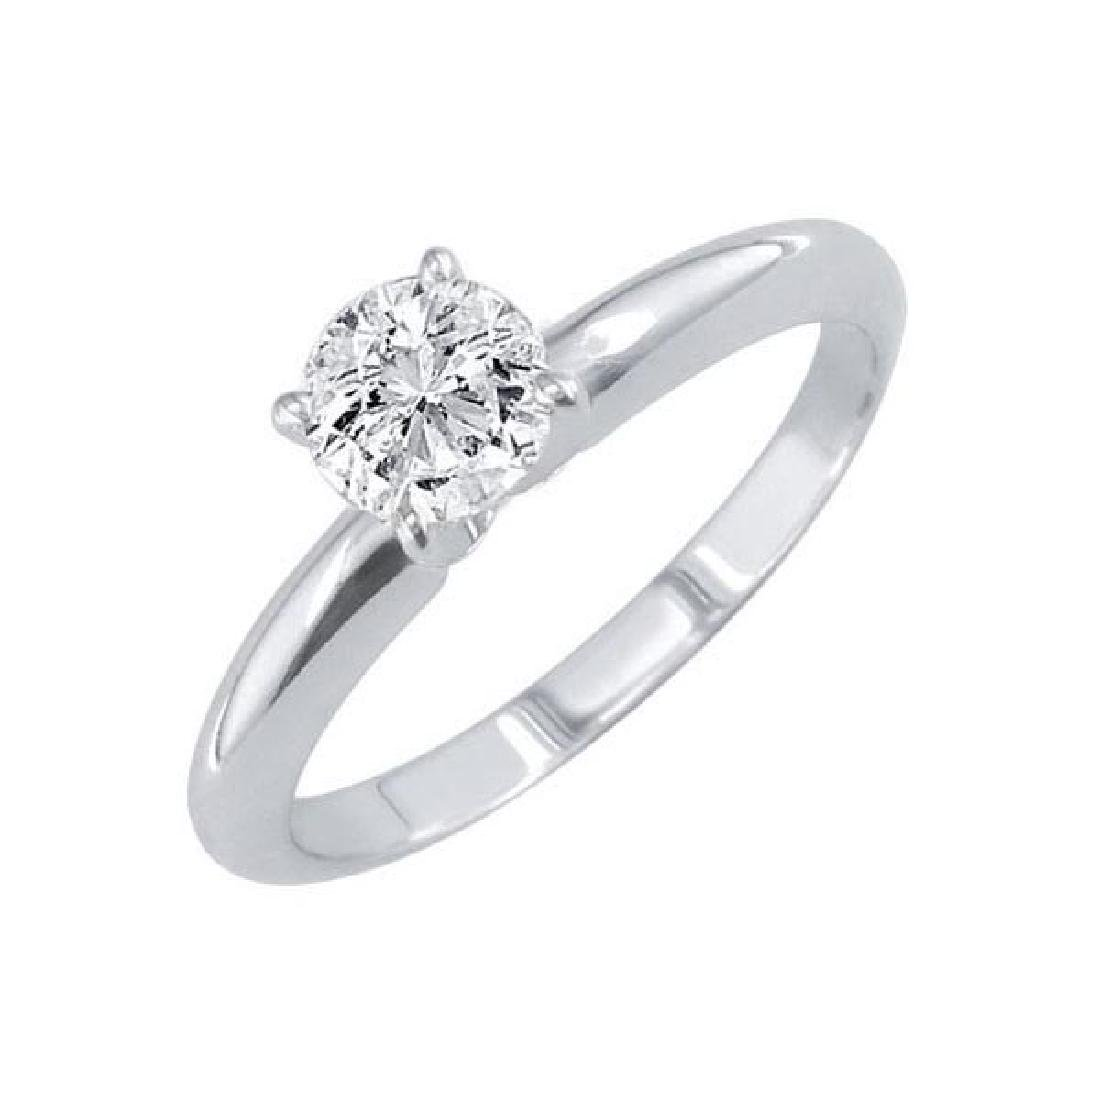 Certified 0.71 CTW Round Diamond Solitaire 14k Ring D/S